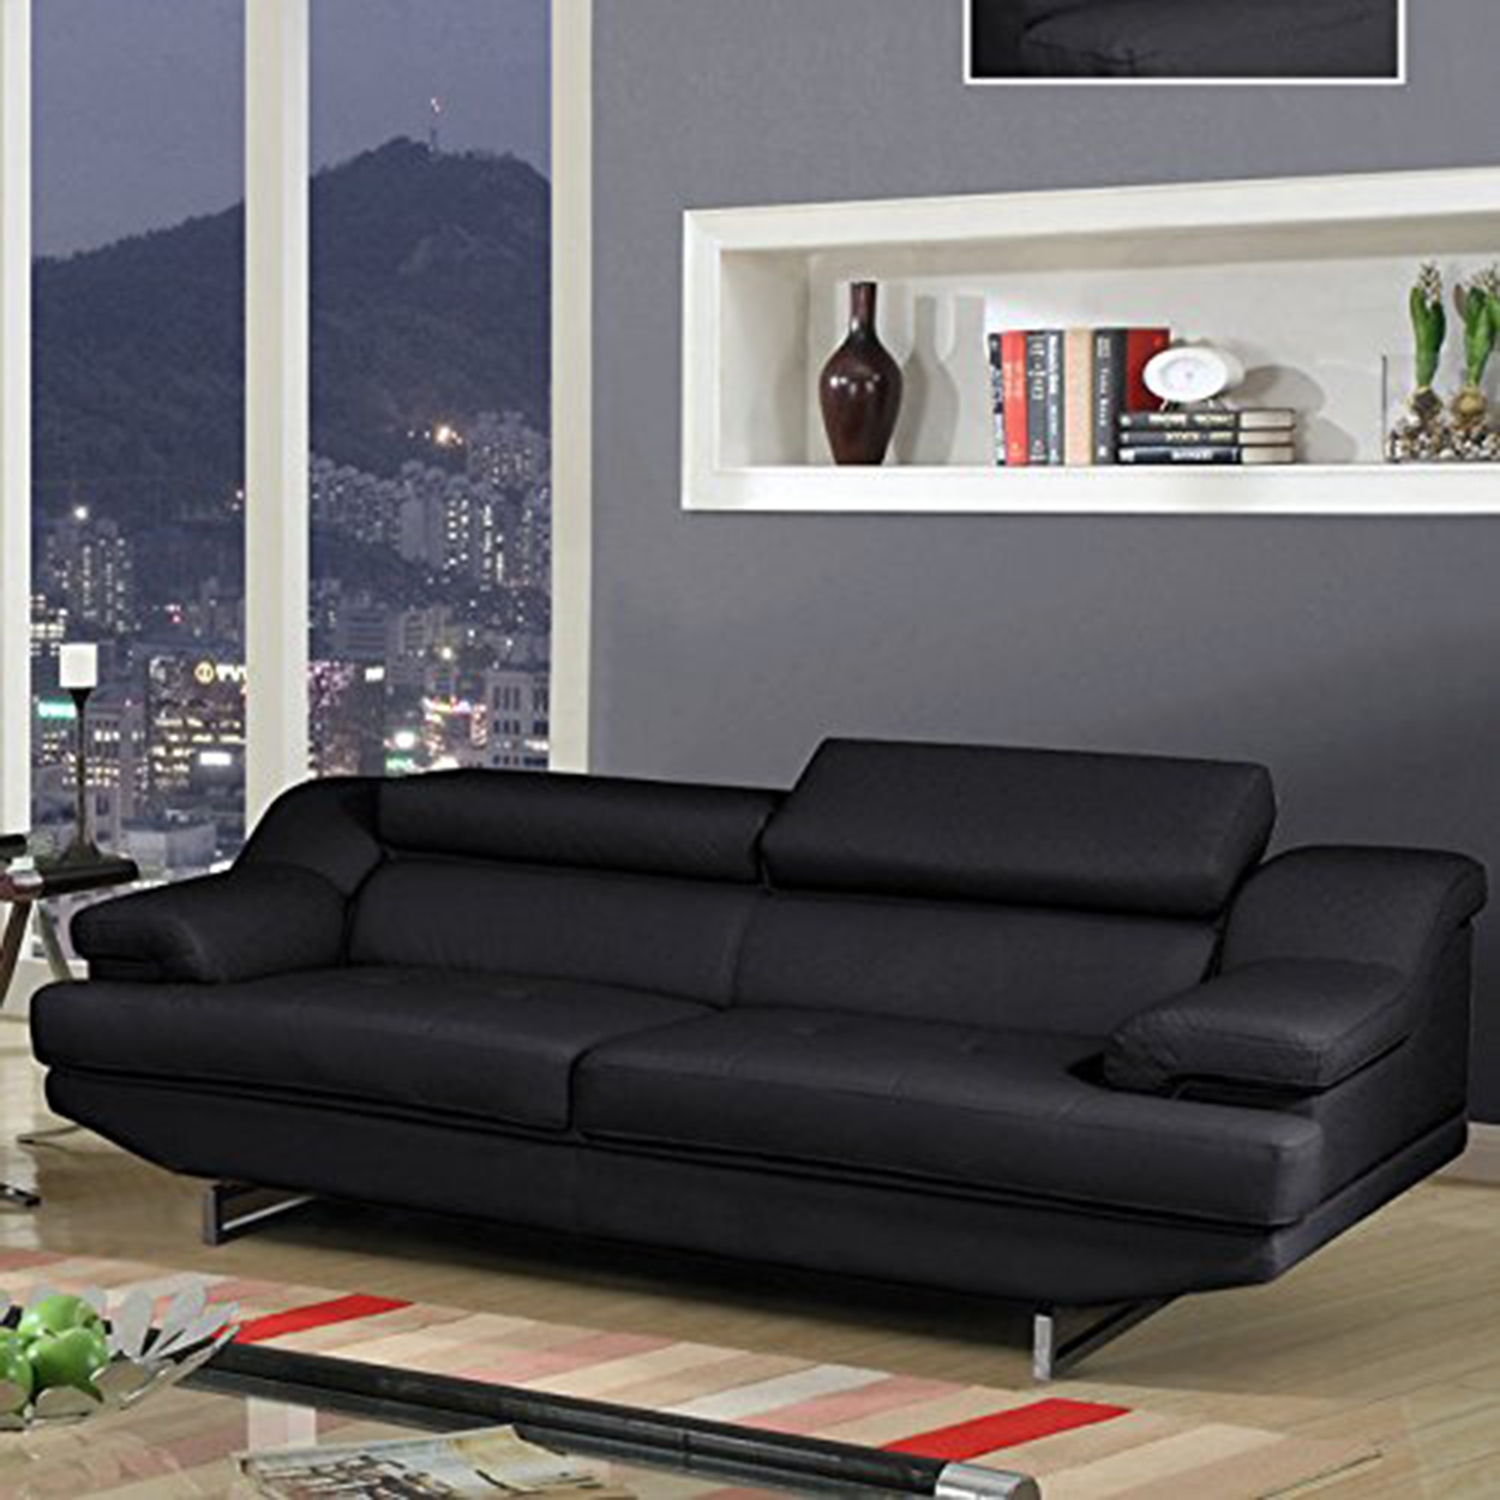 Charlotte Sofa in Black Leather